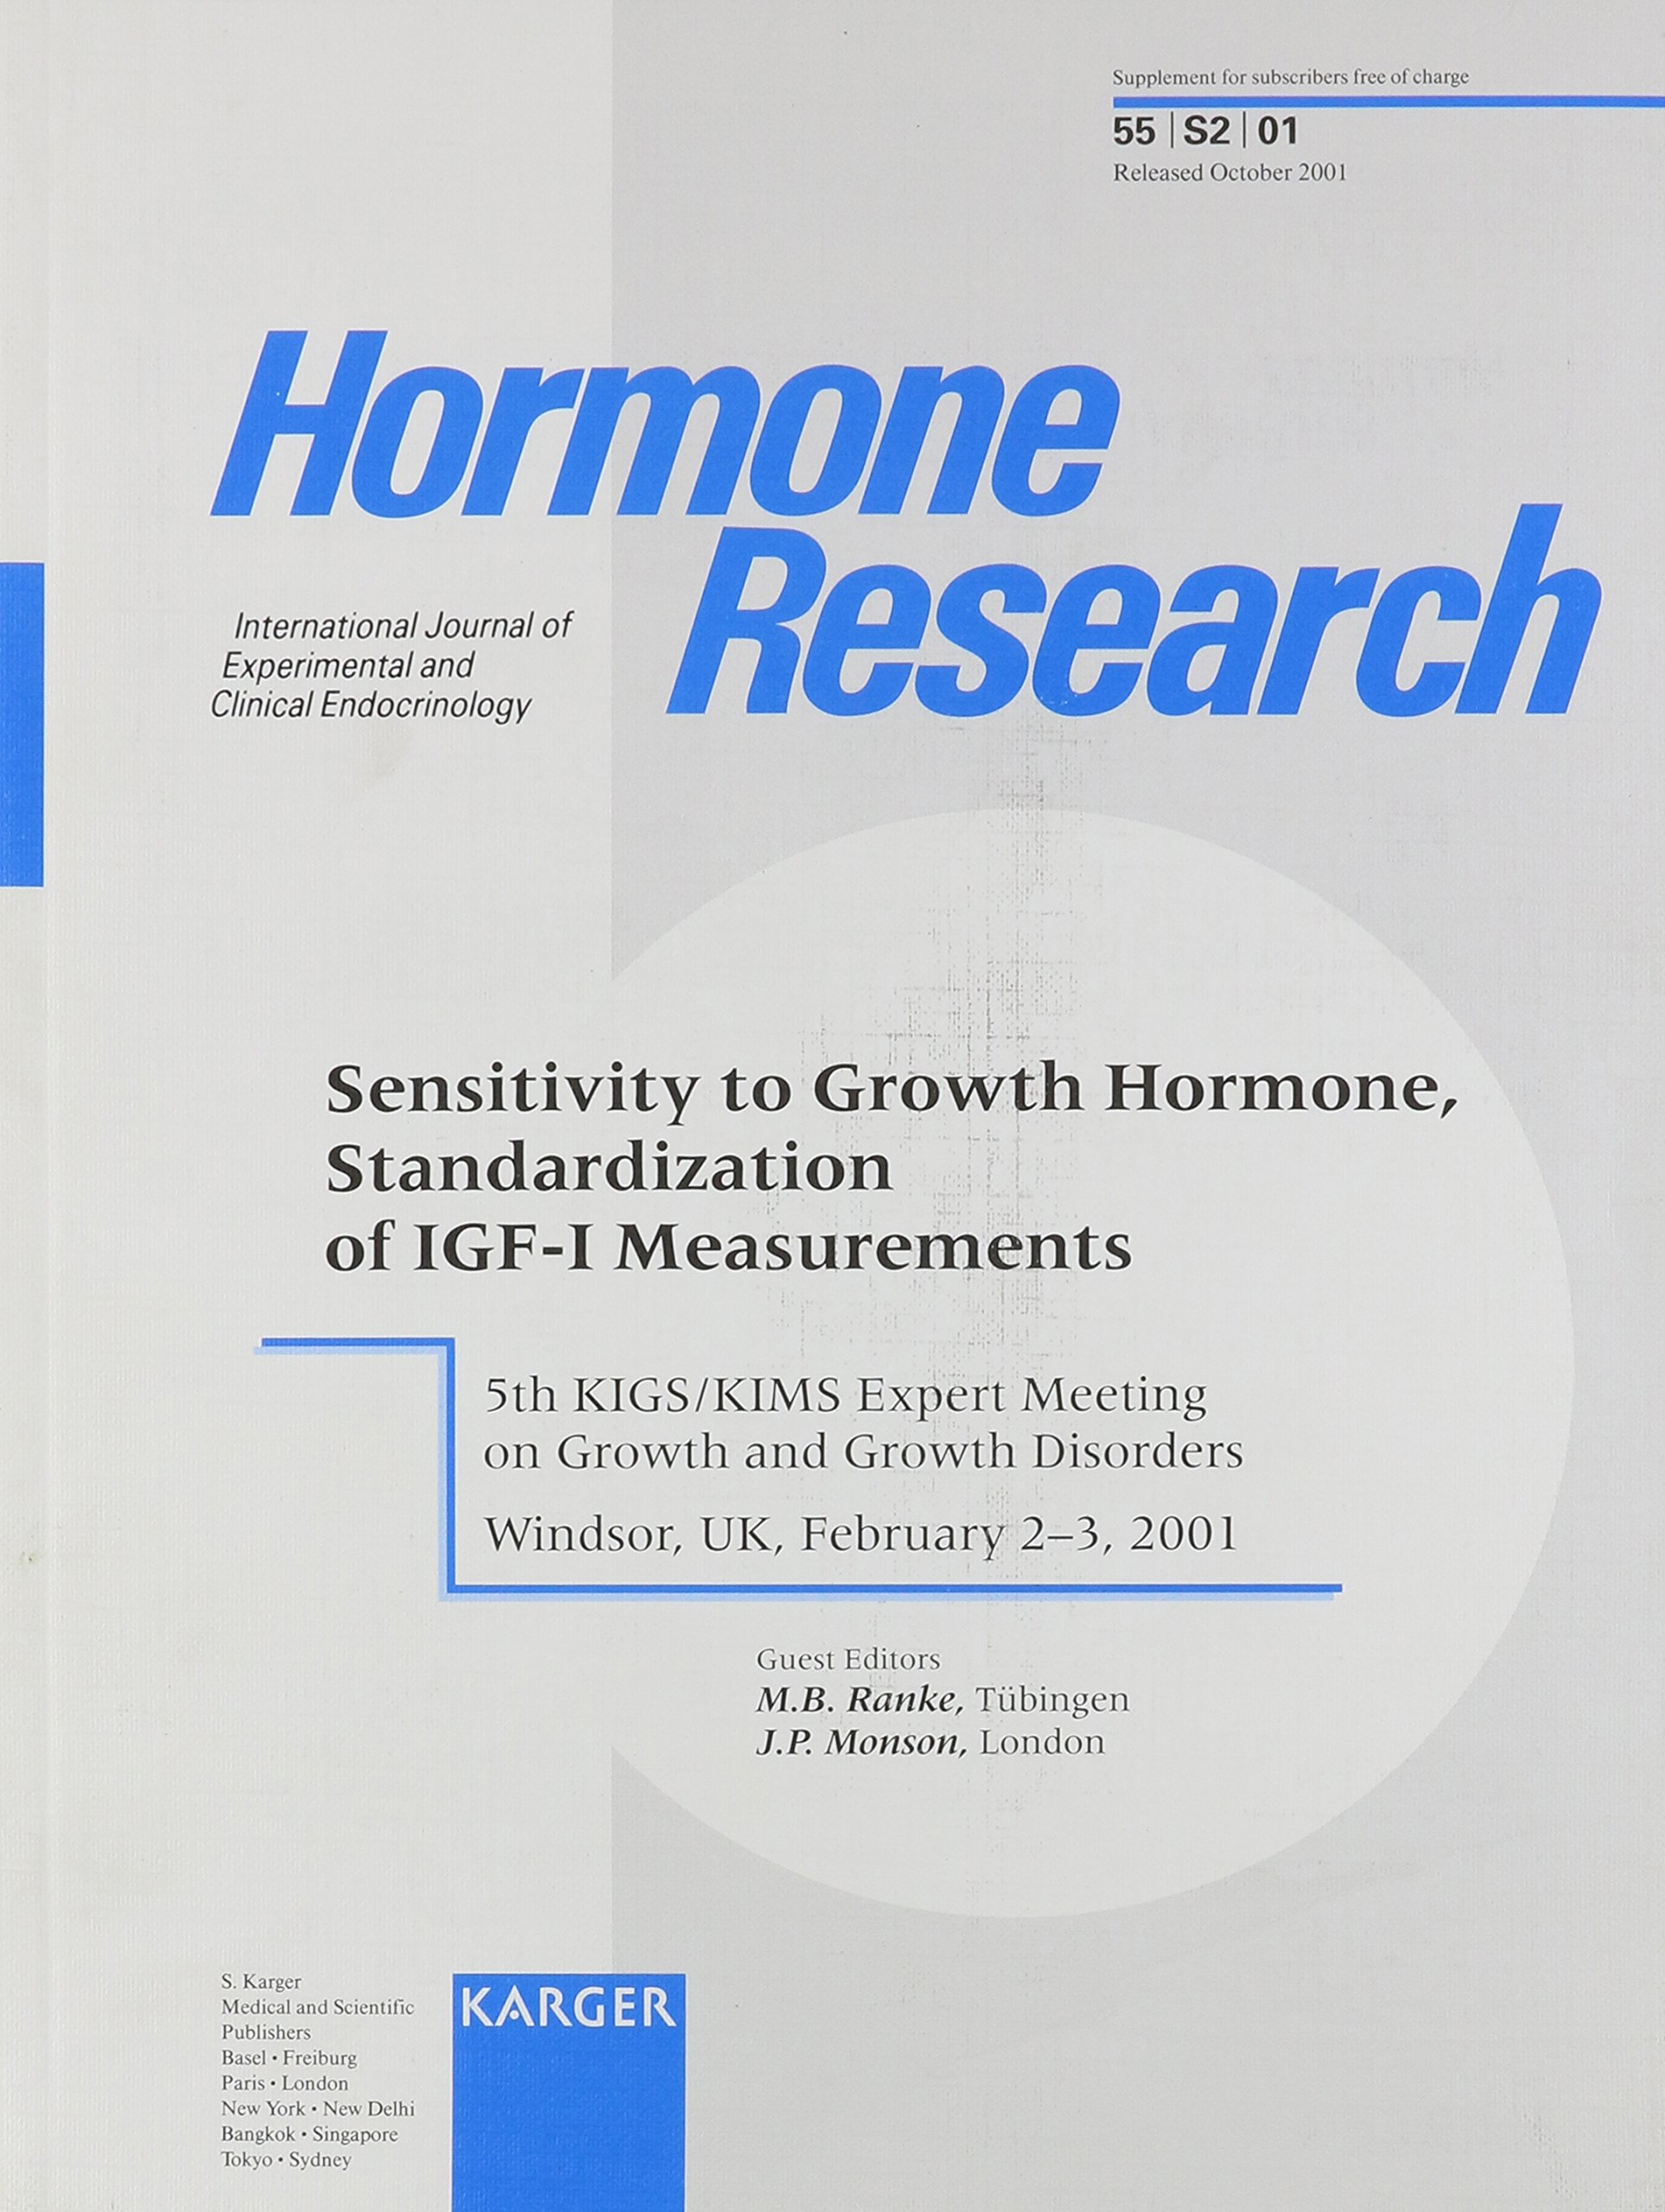 Sensitivity to Growth Hormone, Standardization of IGF-I Measurements: 5th KIGS/KIMS Expert Meeting on Growth and Growth Disorders, Windsor, February 2001 (Supplement Issue: Hormone Research 2001, 2) pdf